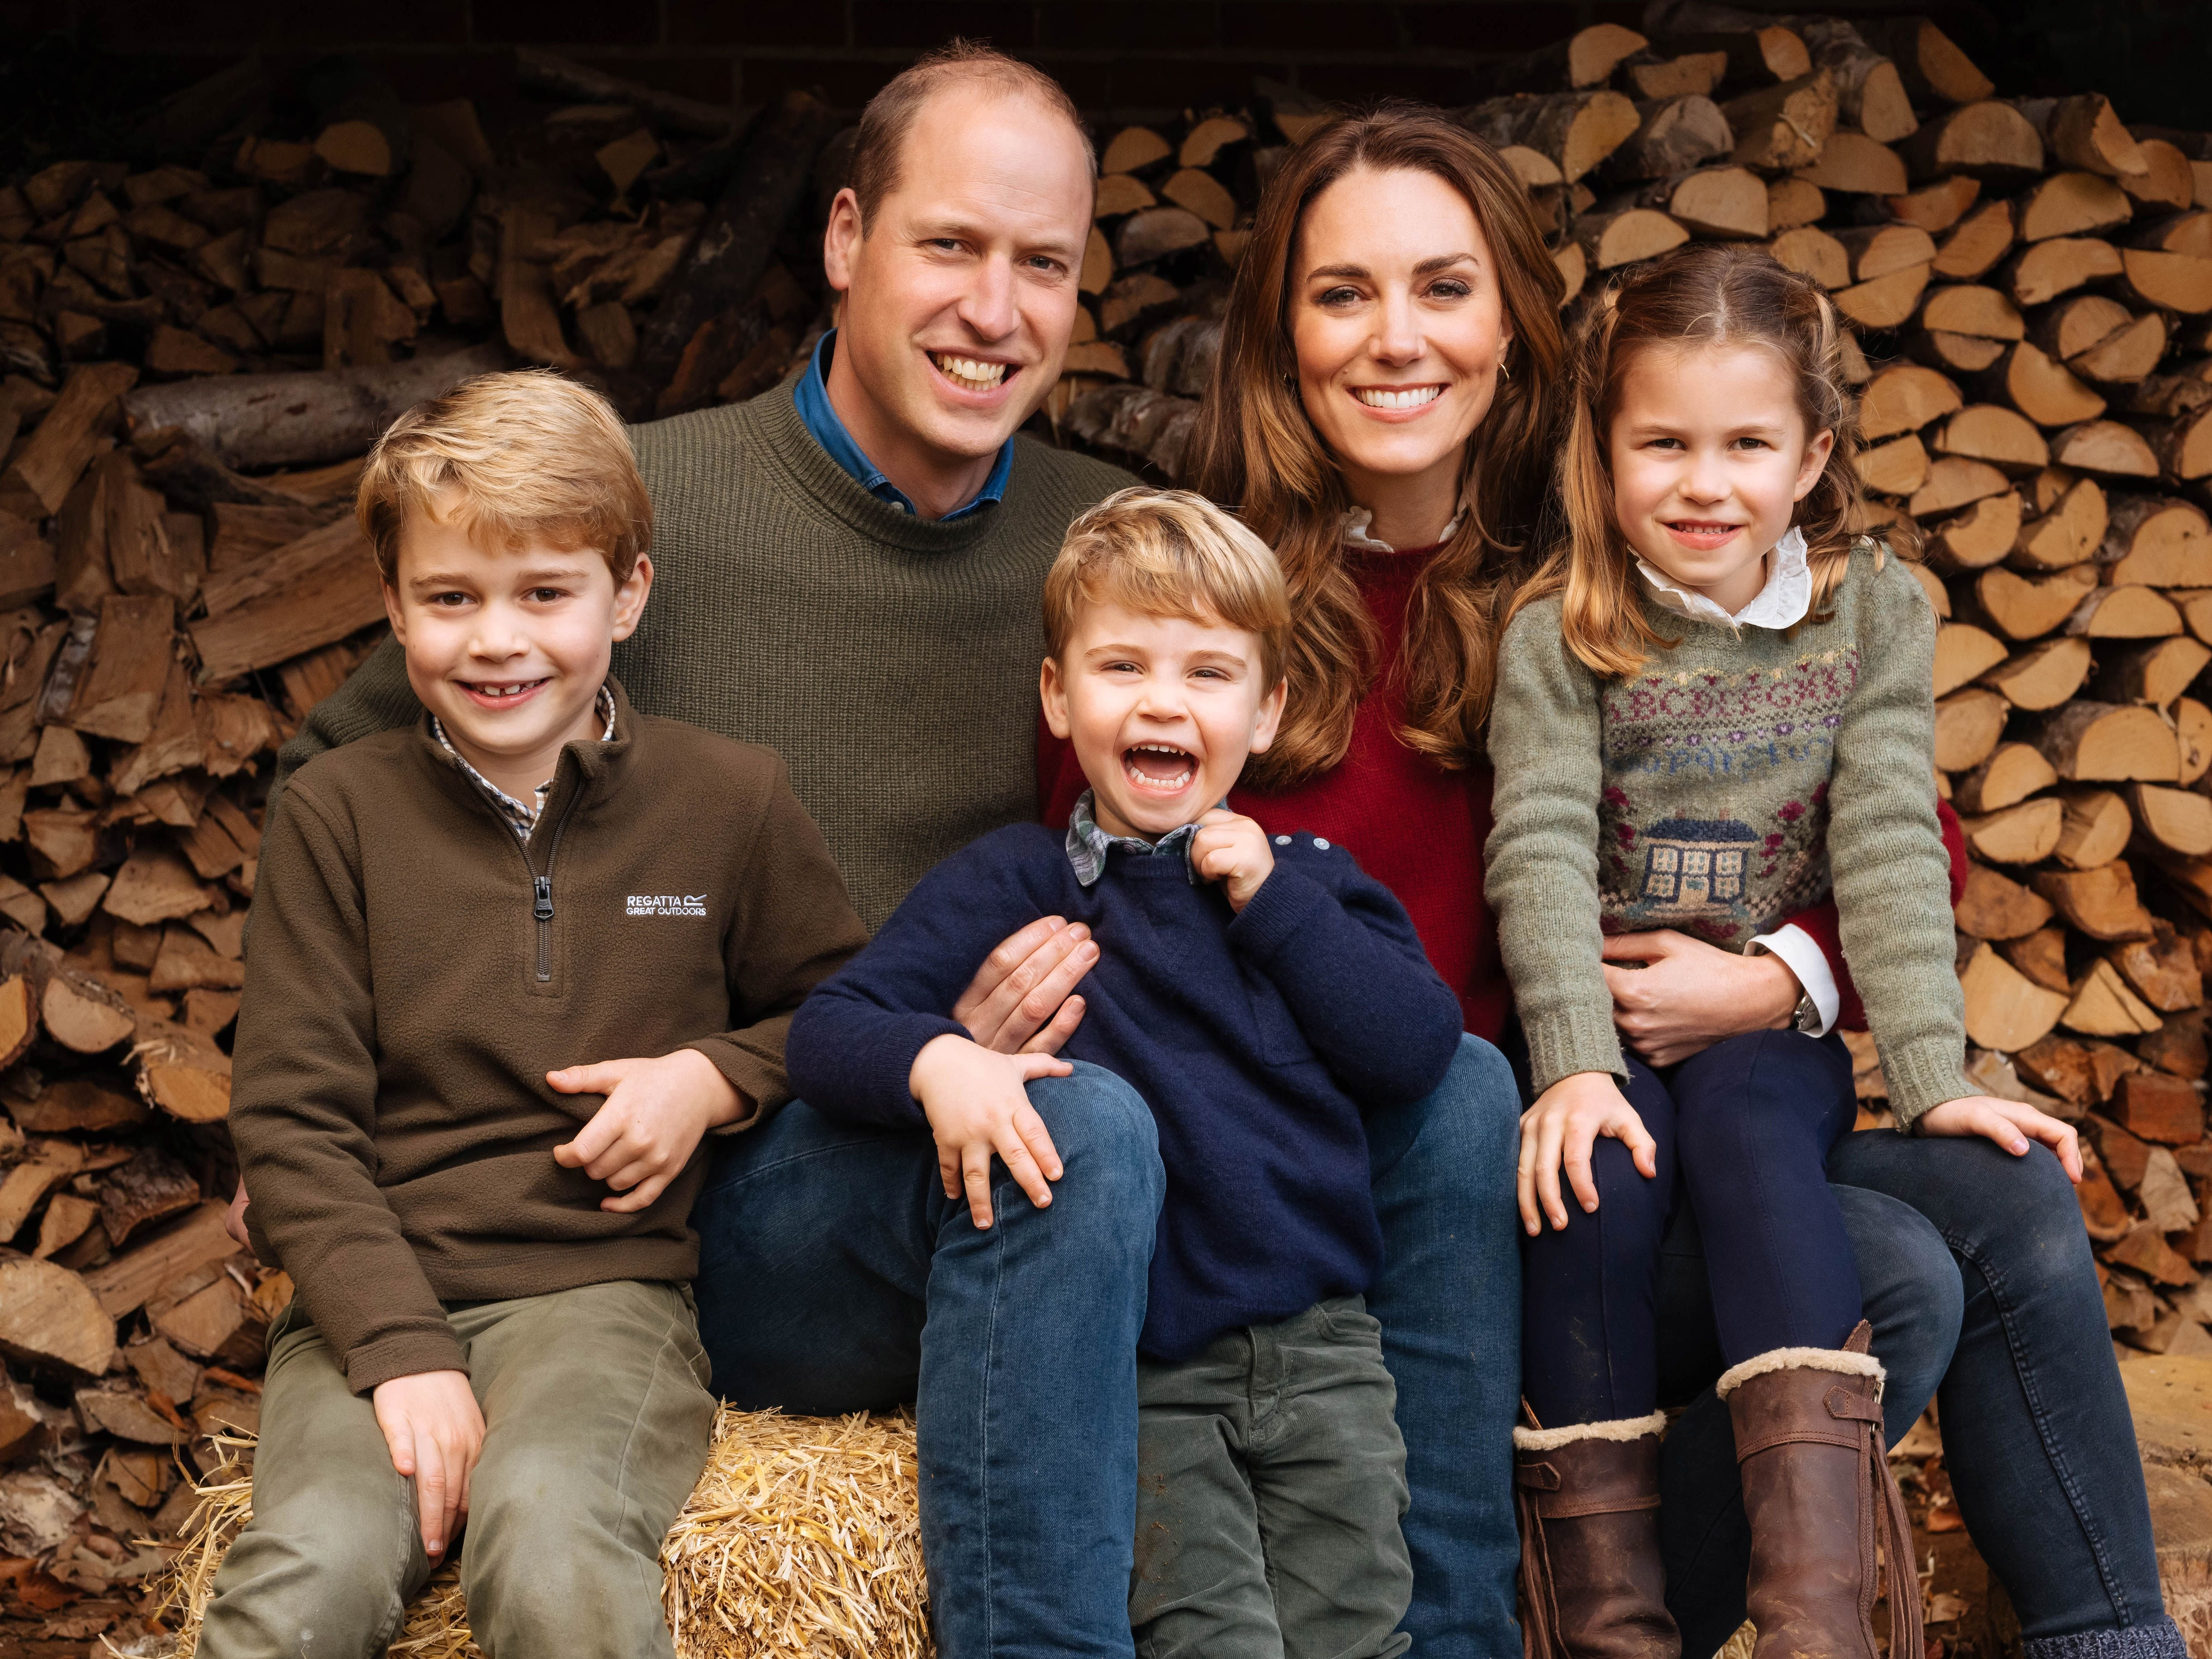 Prince William and Kate Middleton with their three children Prince George, Princess Charlotte and Prince Louis at Anmer Hall on December 16, 2020 | Photo: Getty Images